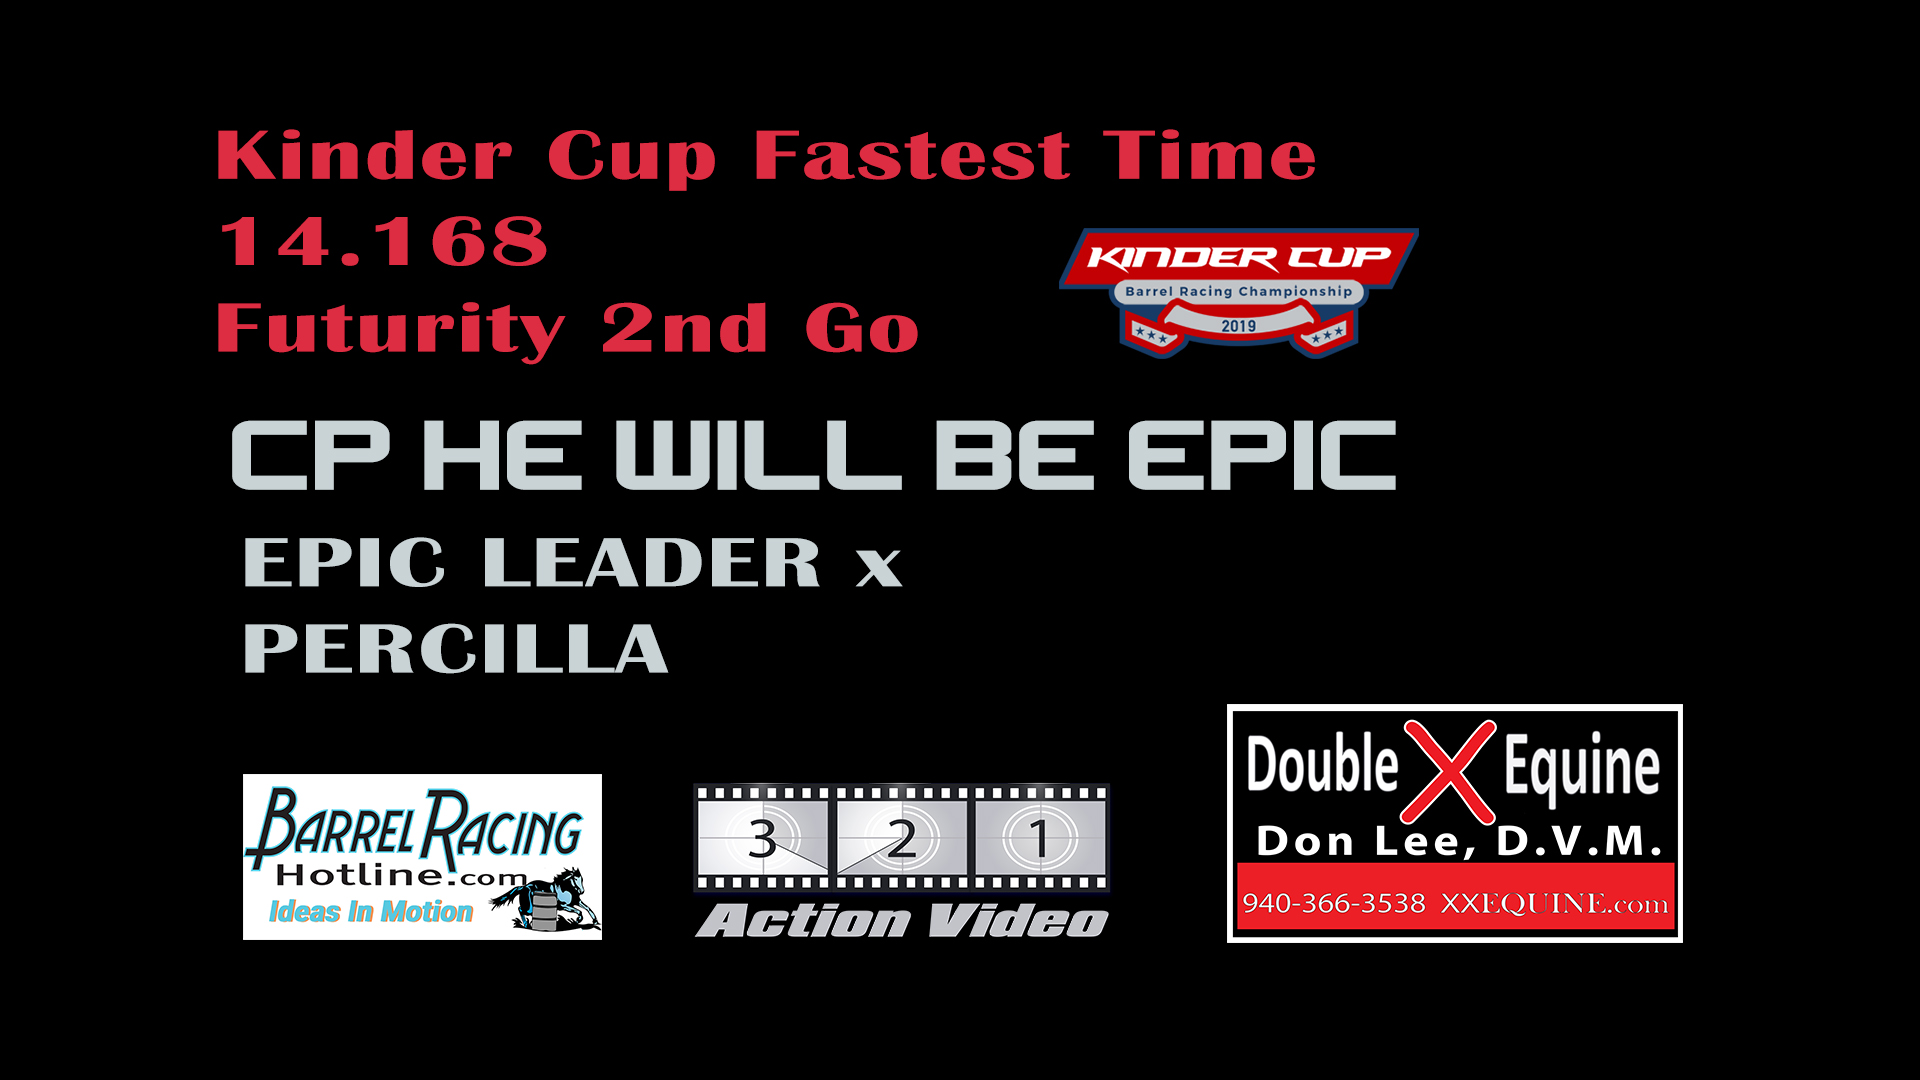 CP He Will Be Epic by Epic Leader and Kassie Mowry post this 14.168 for the fastest time of the entire weekend on this winning run in the 2nd go of the Kinder Cup Futurity.